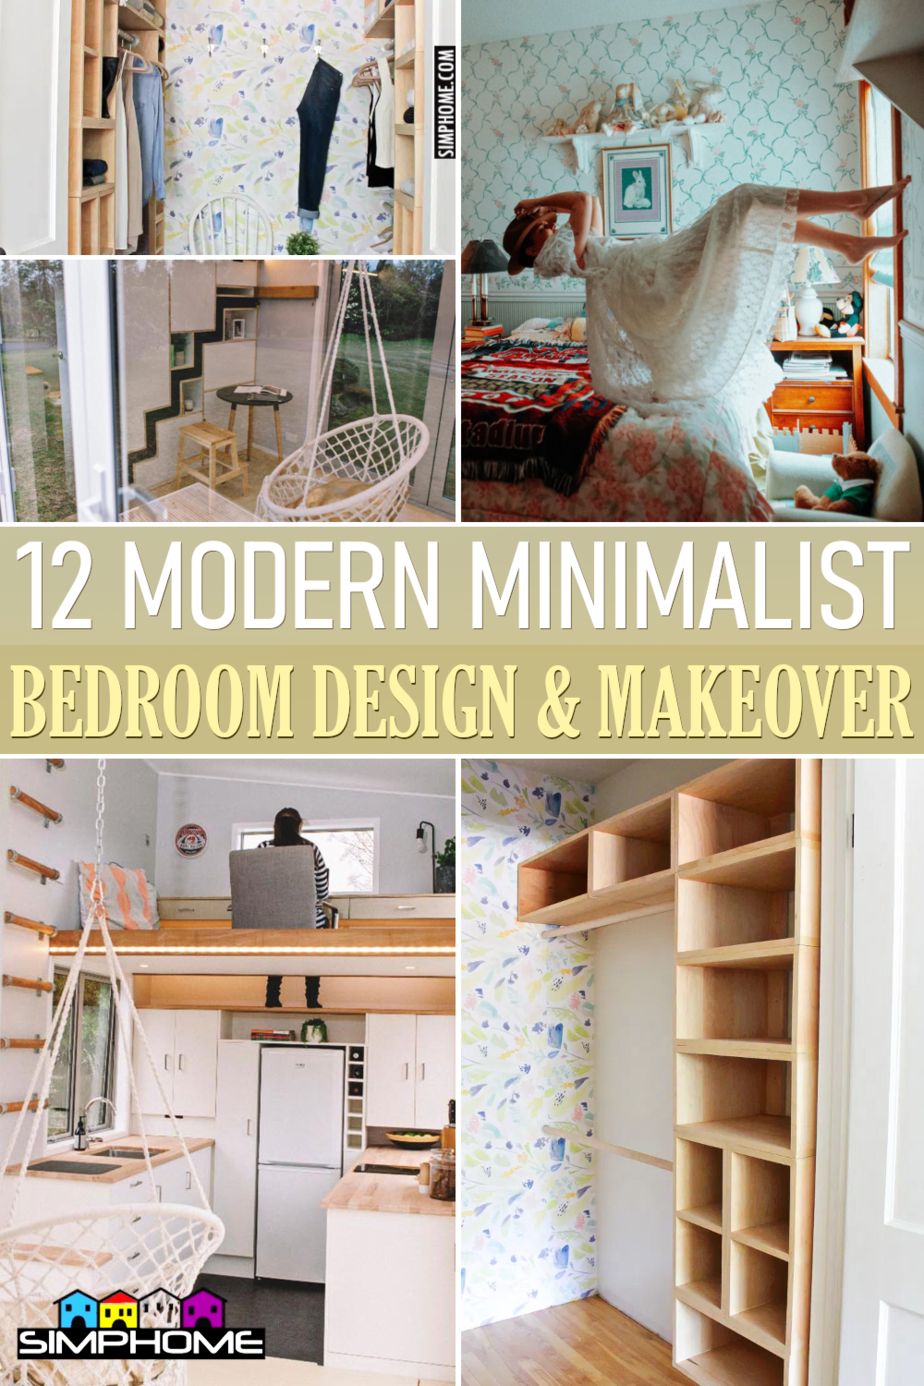 12 Modern Minimalist Bedroom Design And Makeover via Simphome.comFeatured